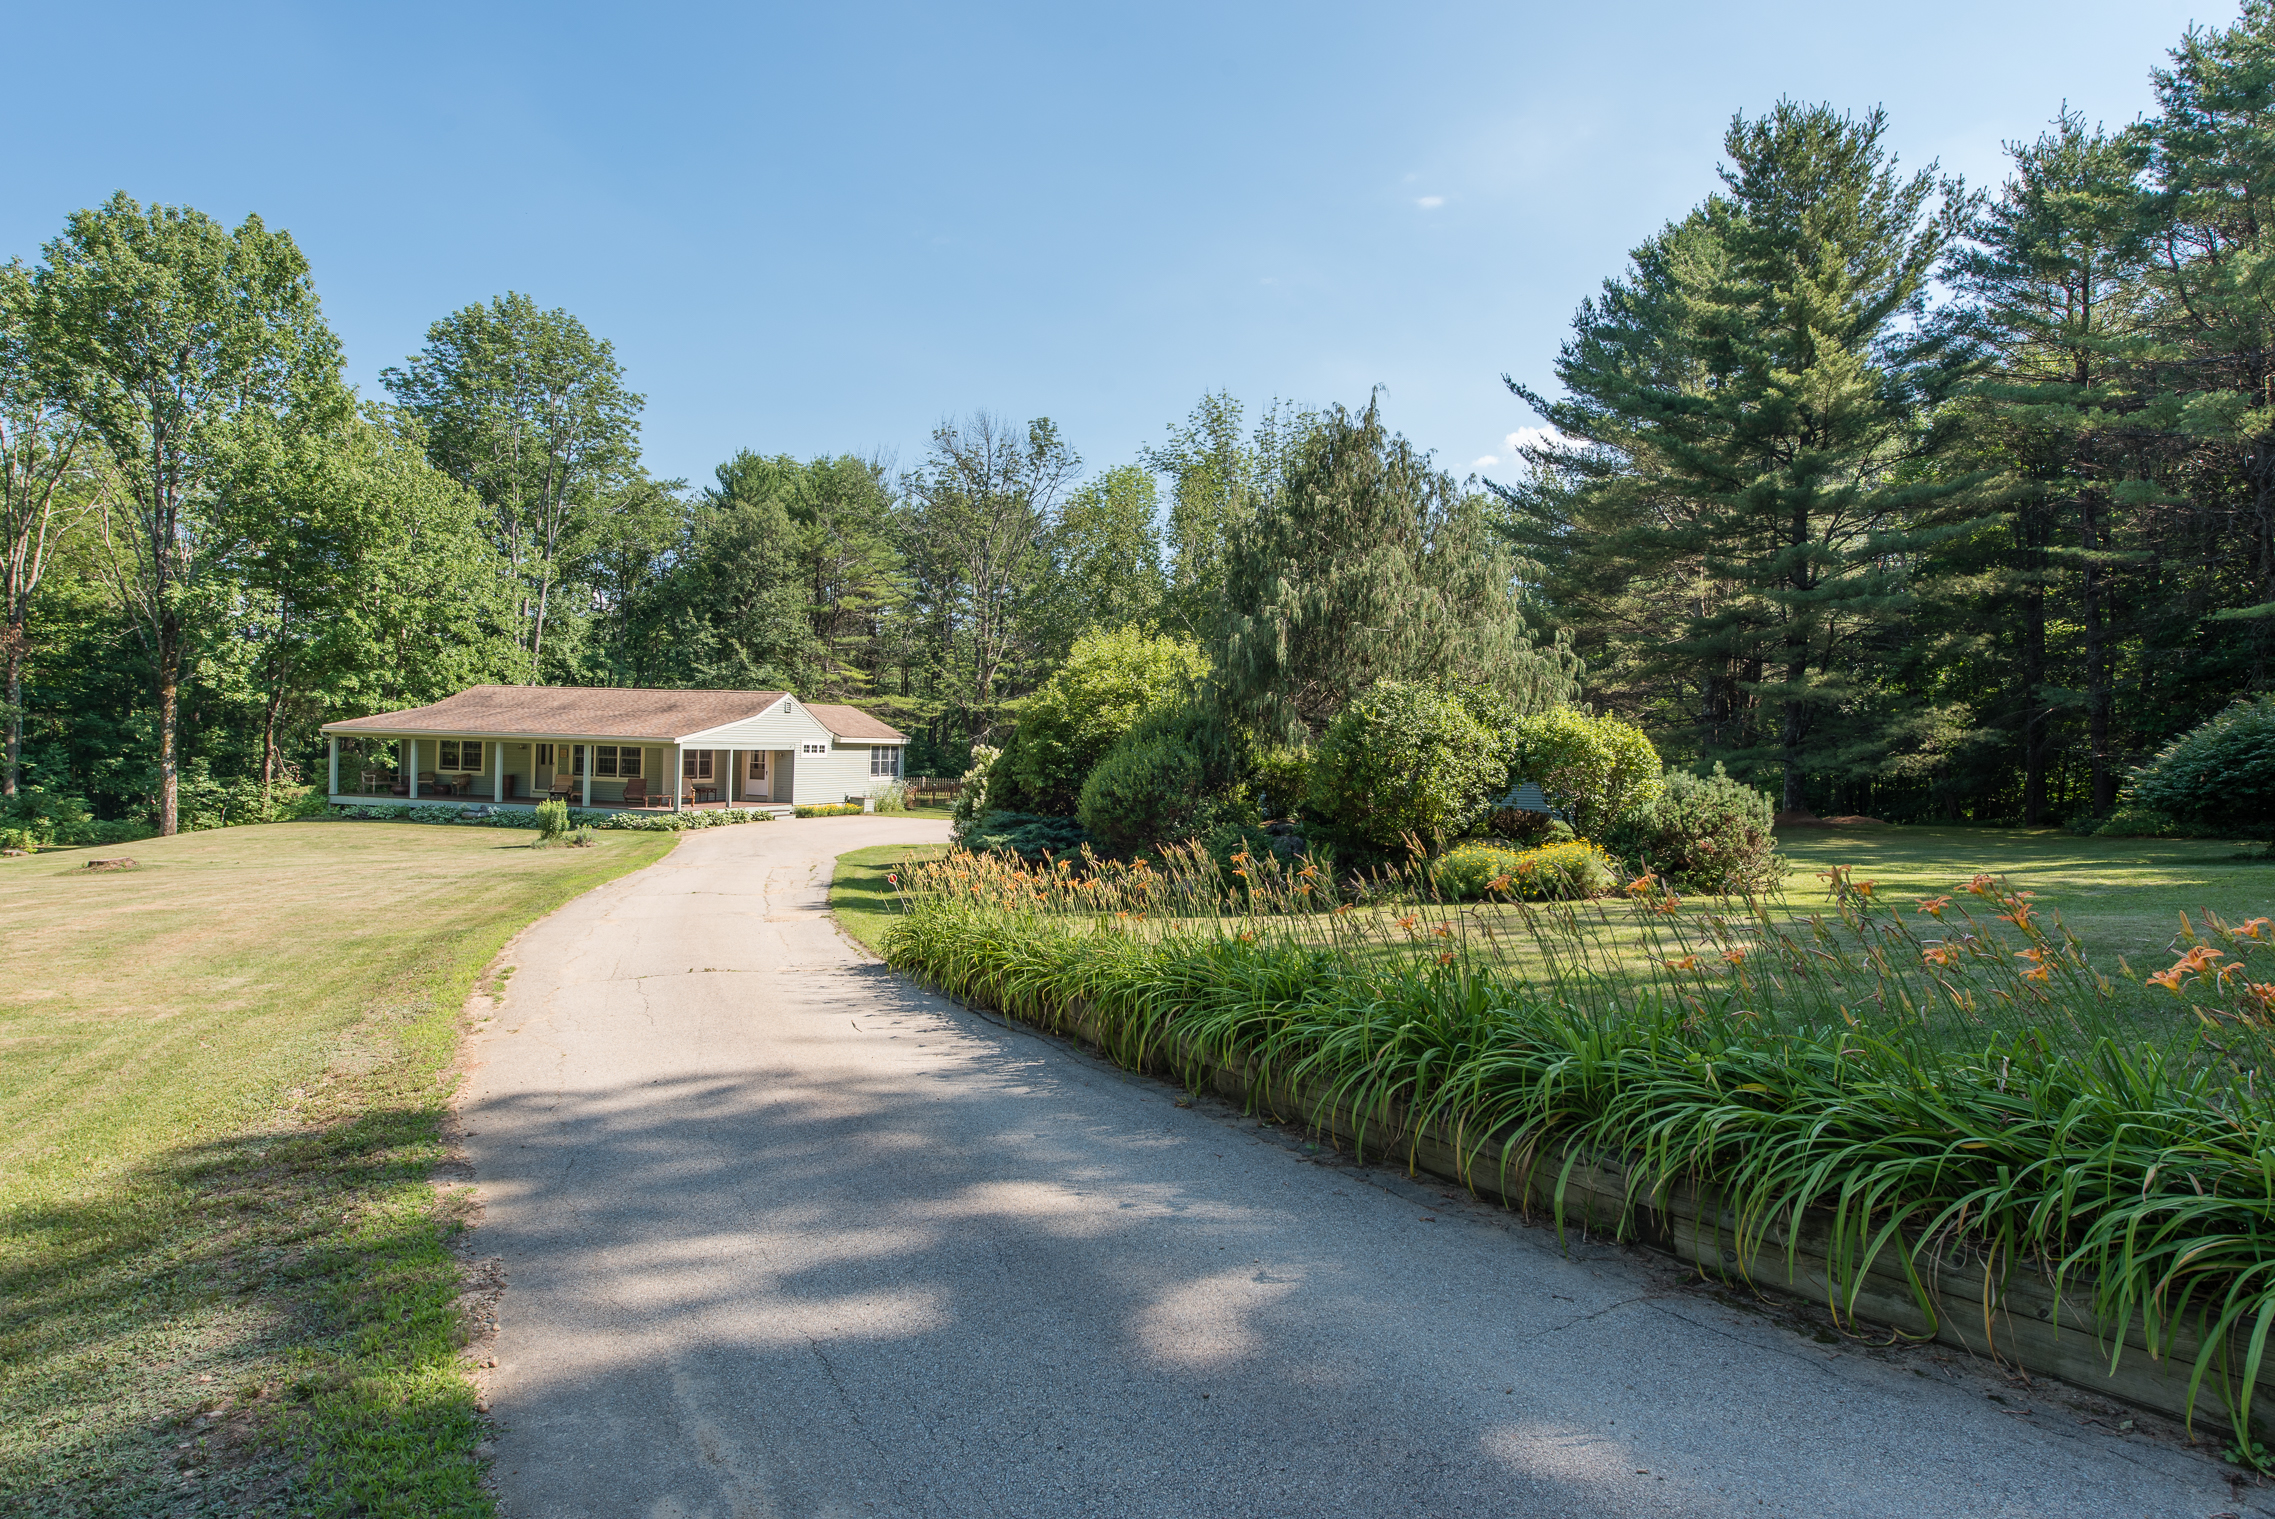 Single Family Home for Sale at Charming Meredith Ranch 45 Old Center Harbor Rd Meredith, New Hampshire, 03253 United States